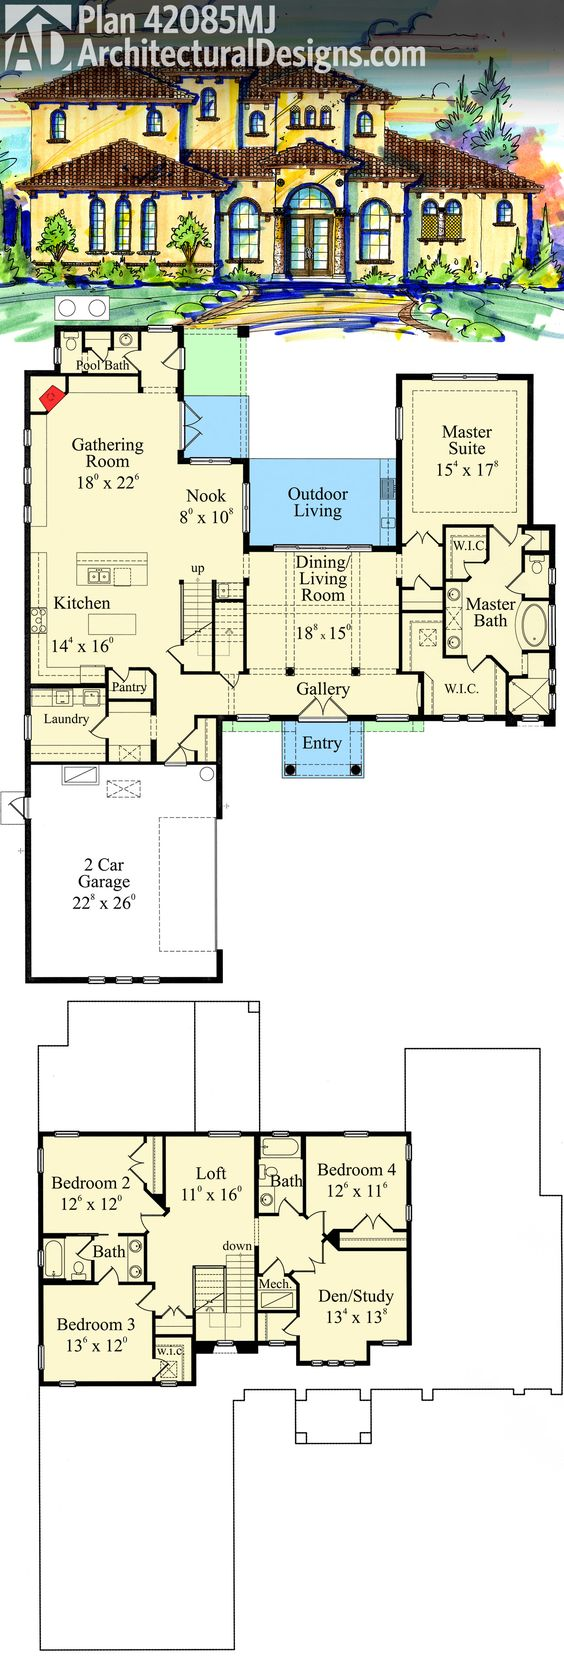 Villas Master Bedrooms And House Plans On Pinterest